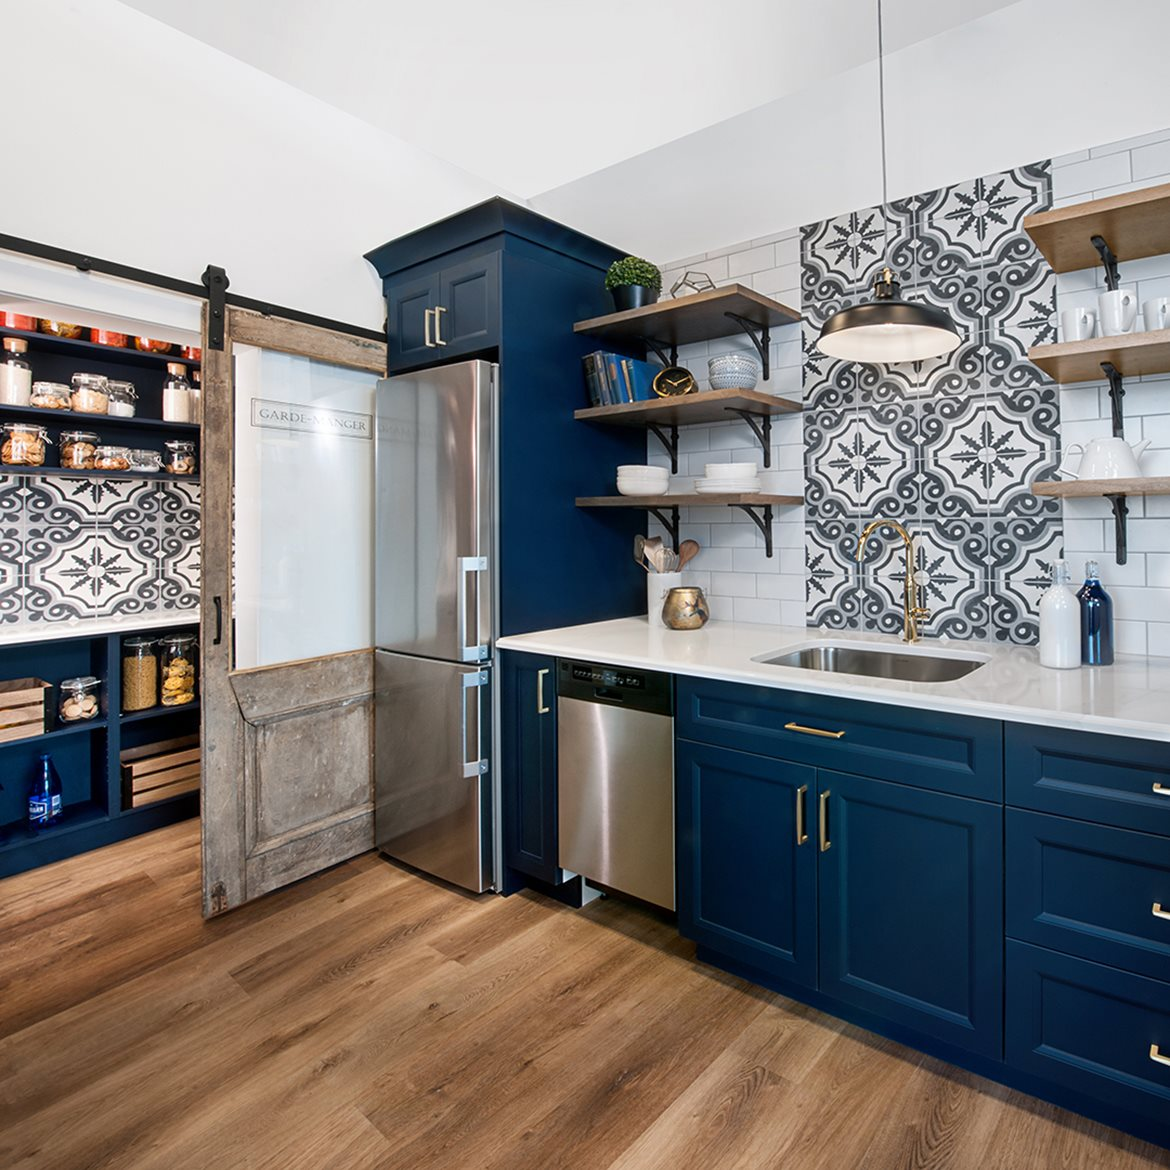 Kitchen offering a mix of textures and designs